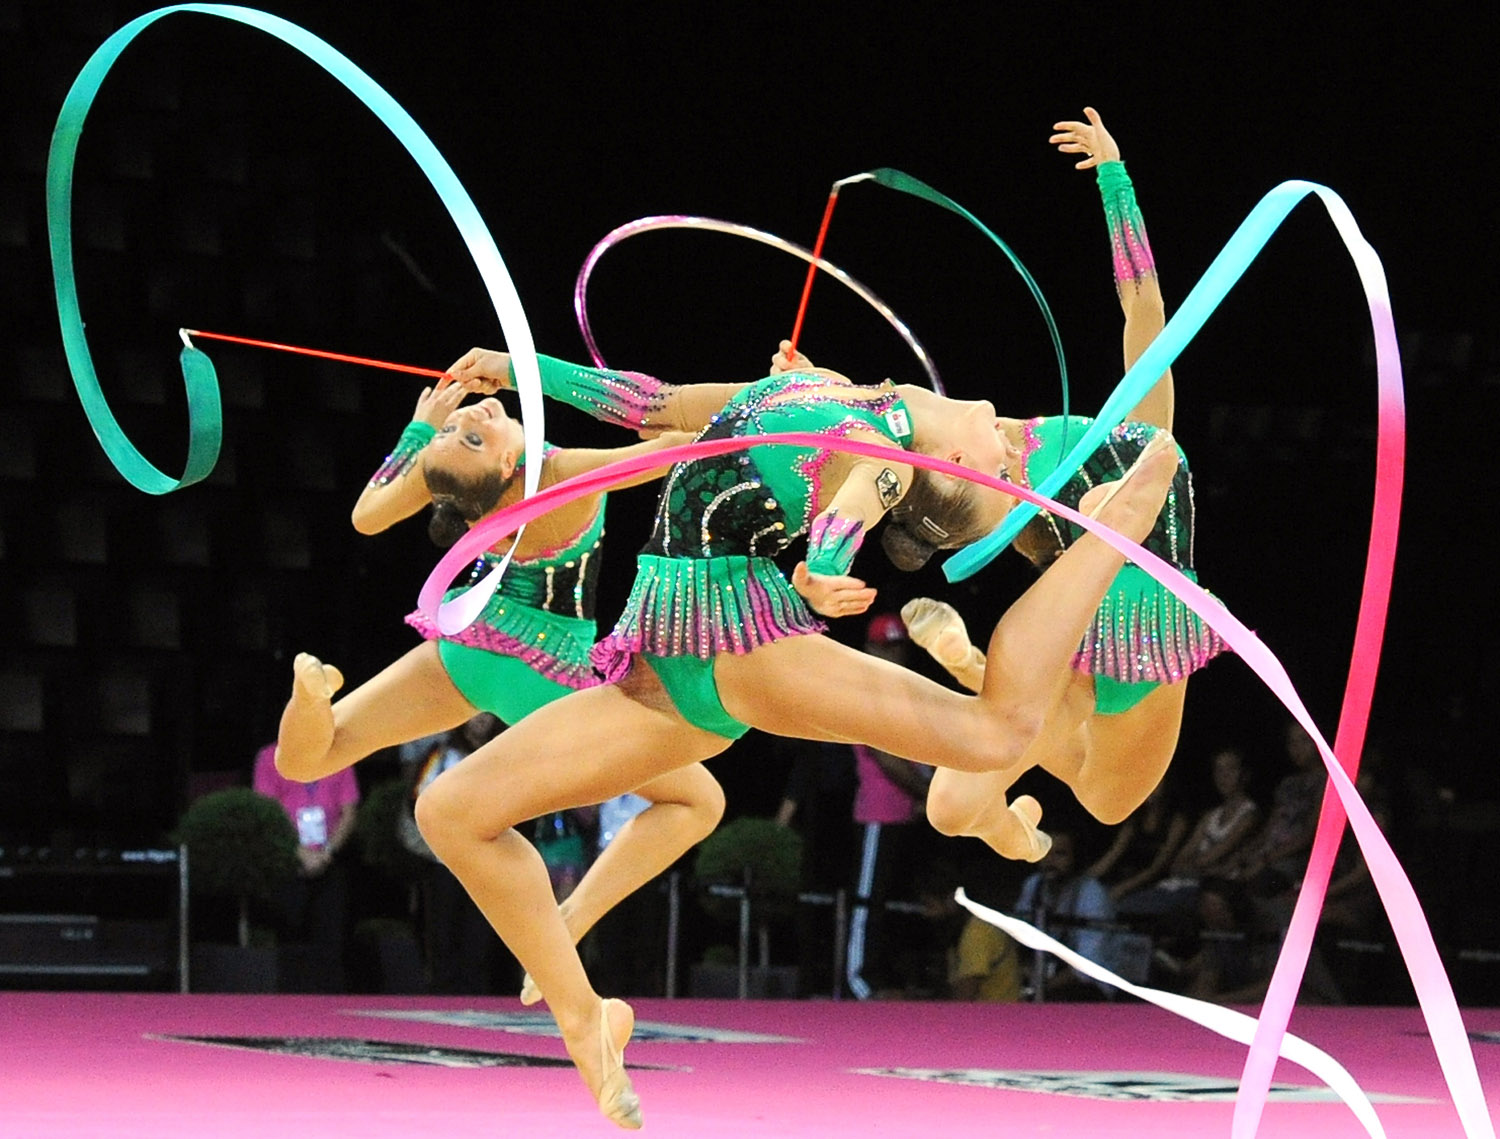 September 25, 2011. Team of Germany performs with the three Ribbons and two Hoops in the groups final competition of the 31st Rhythmic Gymnastics World Championships in Montpellier, southern France. Bulgaria won the gold medal, Italy the silver and Israel the bronze in the three Ribbons and two Hoops events.